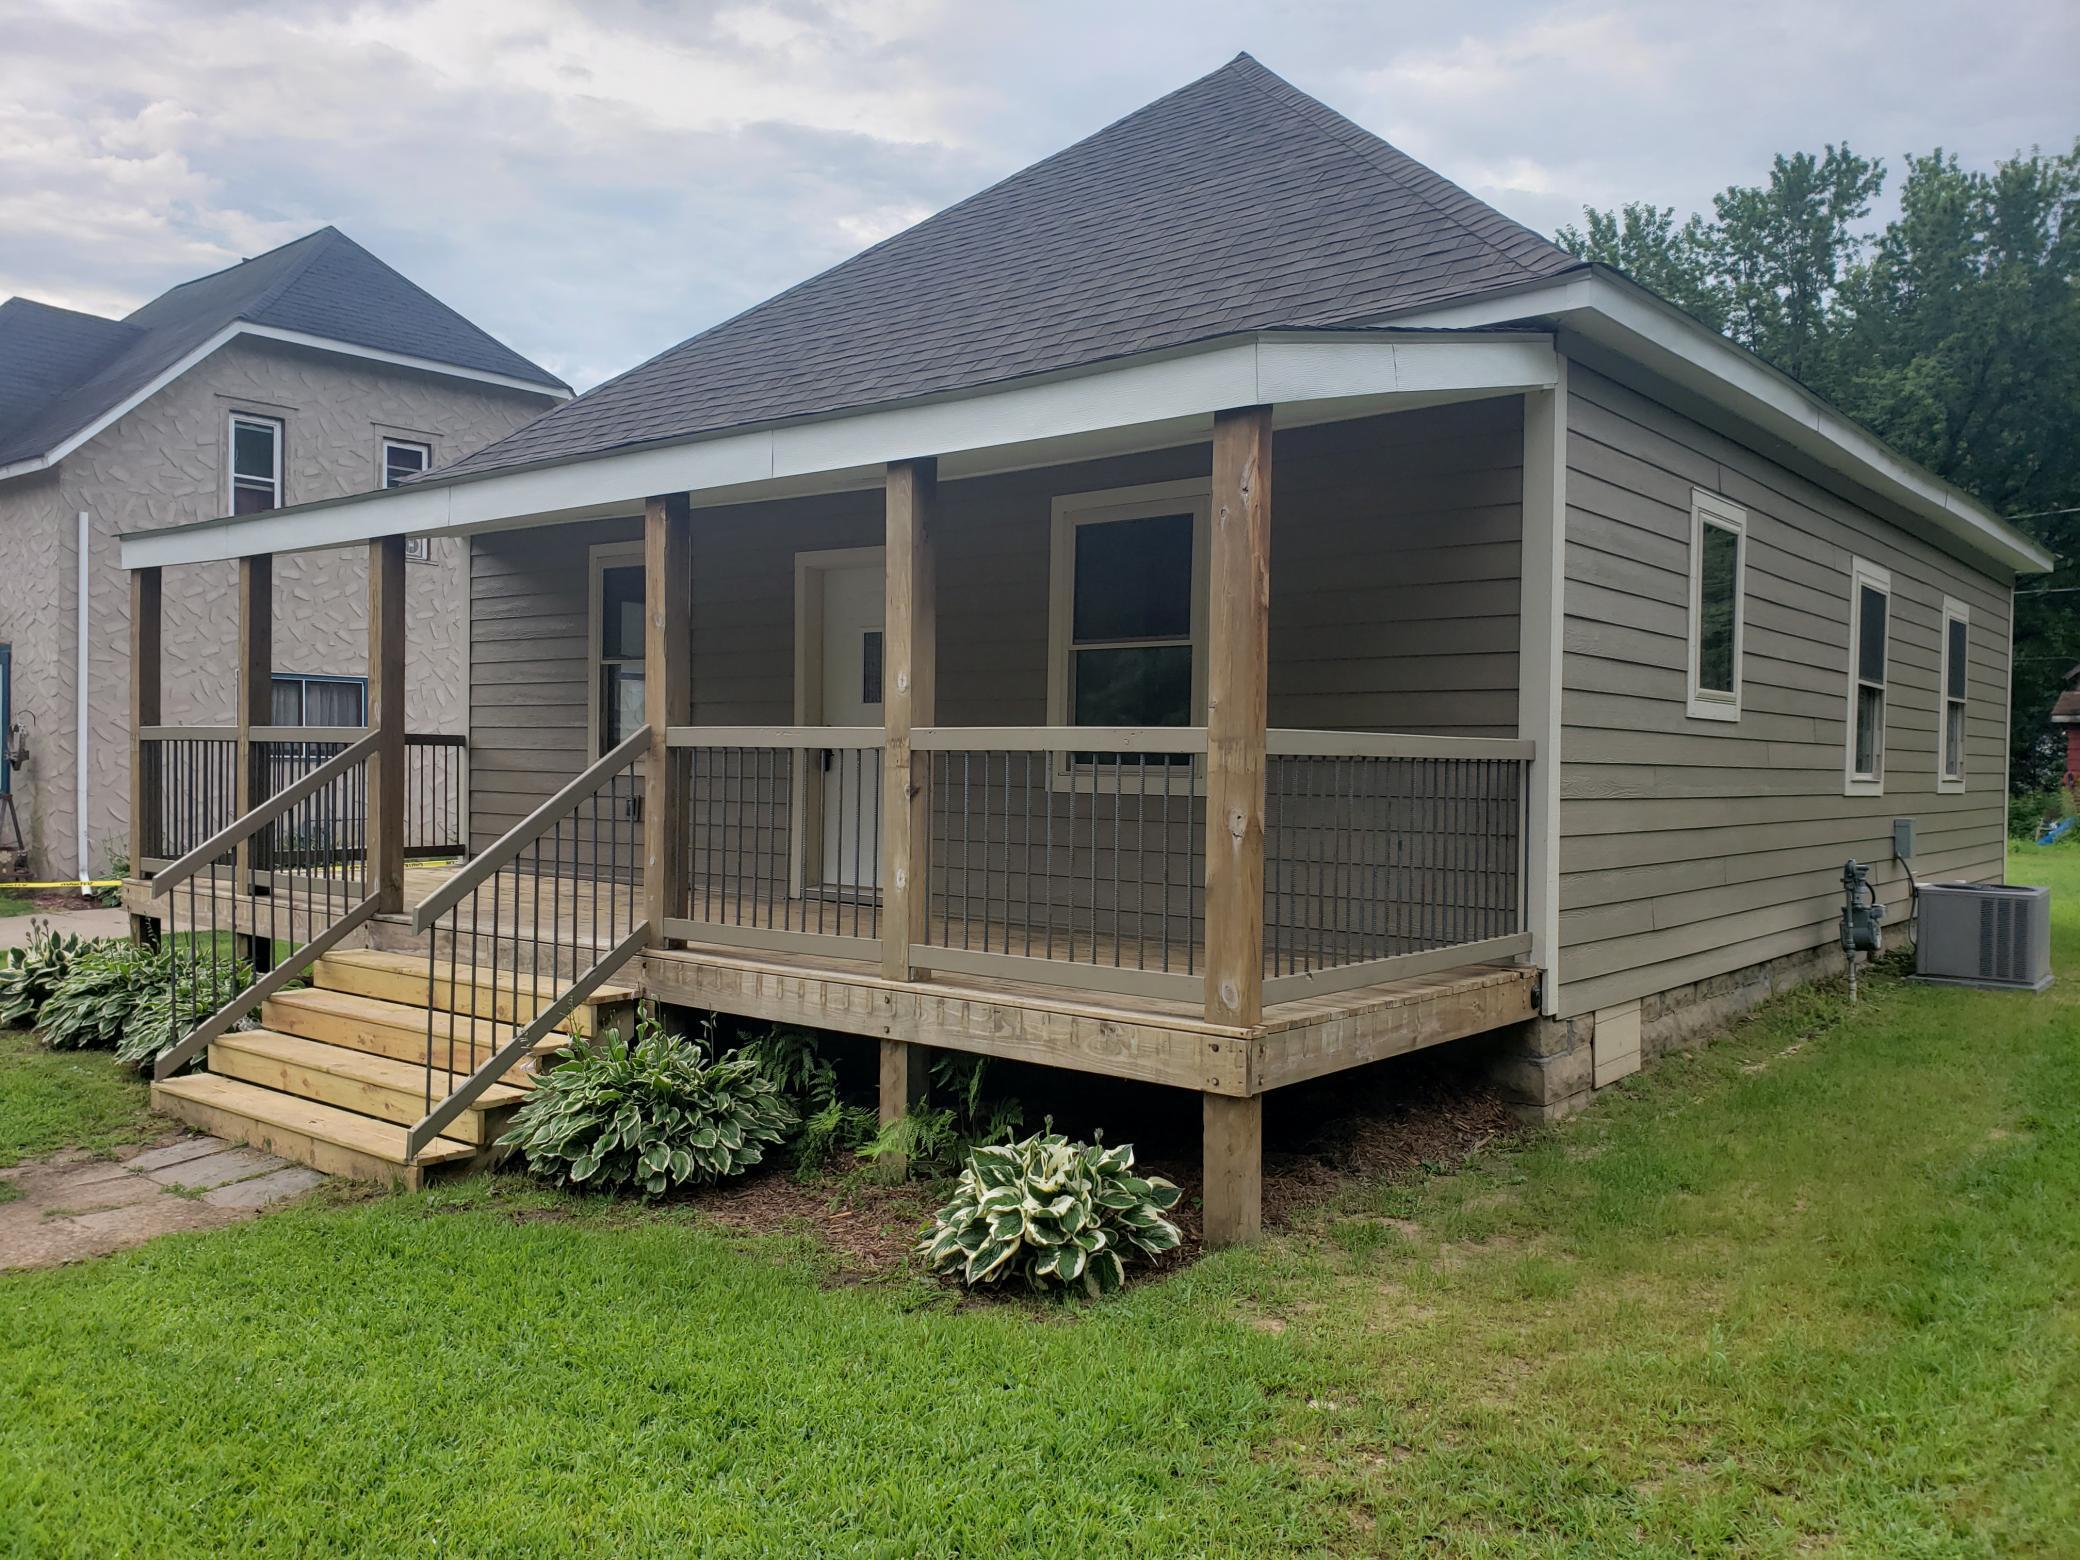 W305 Central Property Photo - Spring Valley, WI real estate listing